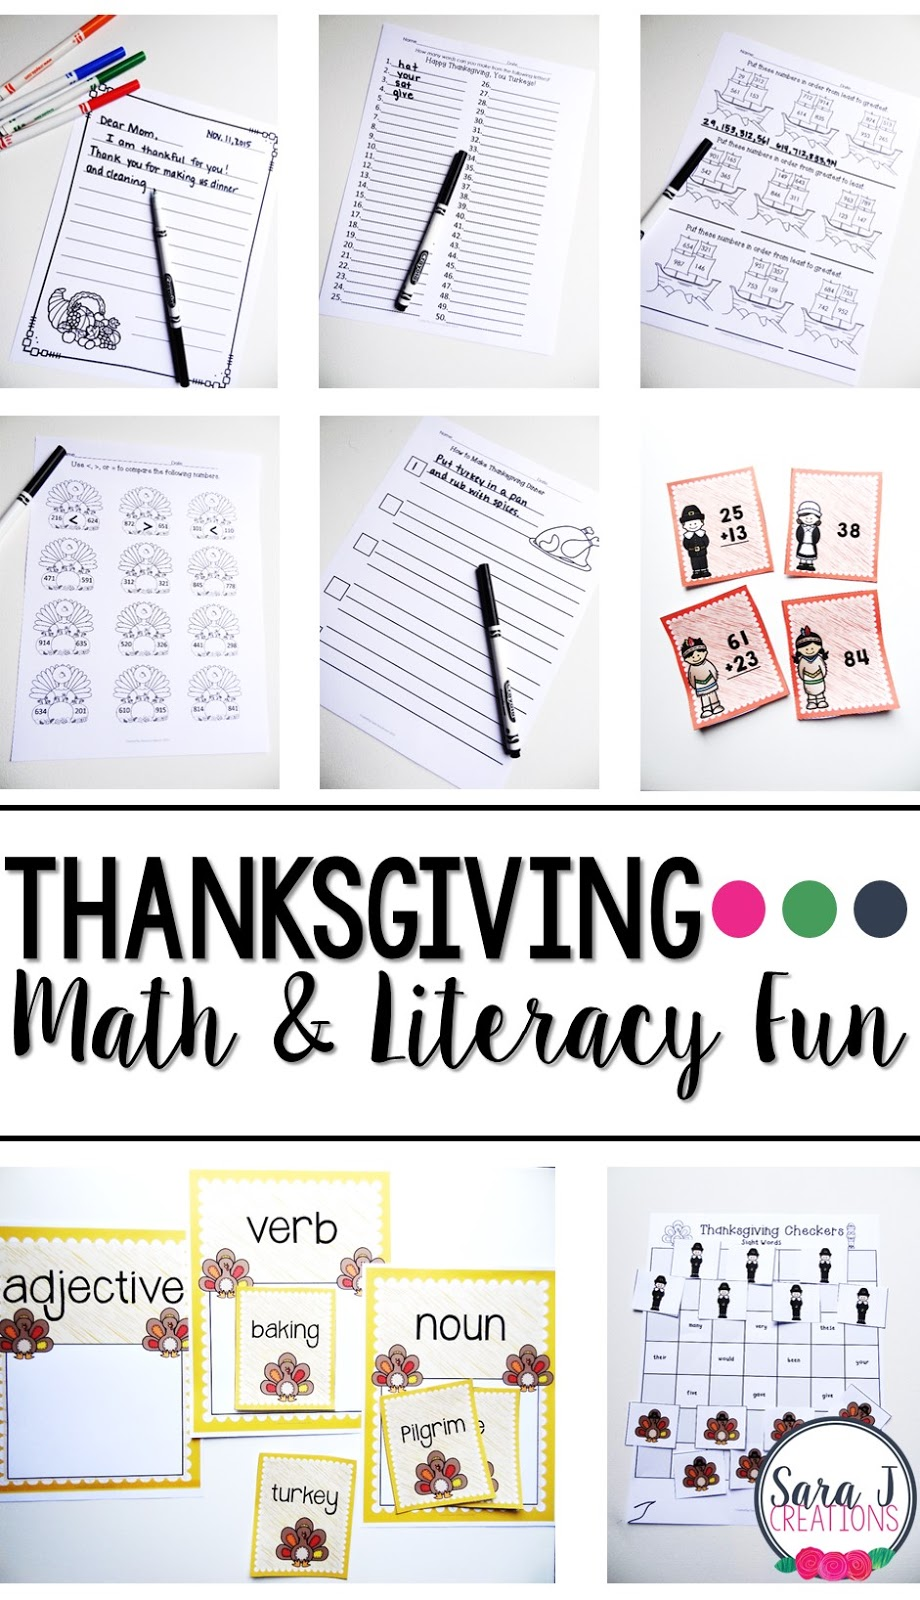 Thanksgiving themed printable ELA & Math activities for the classroom